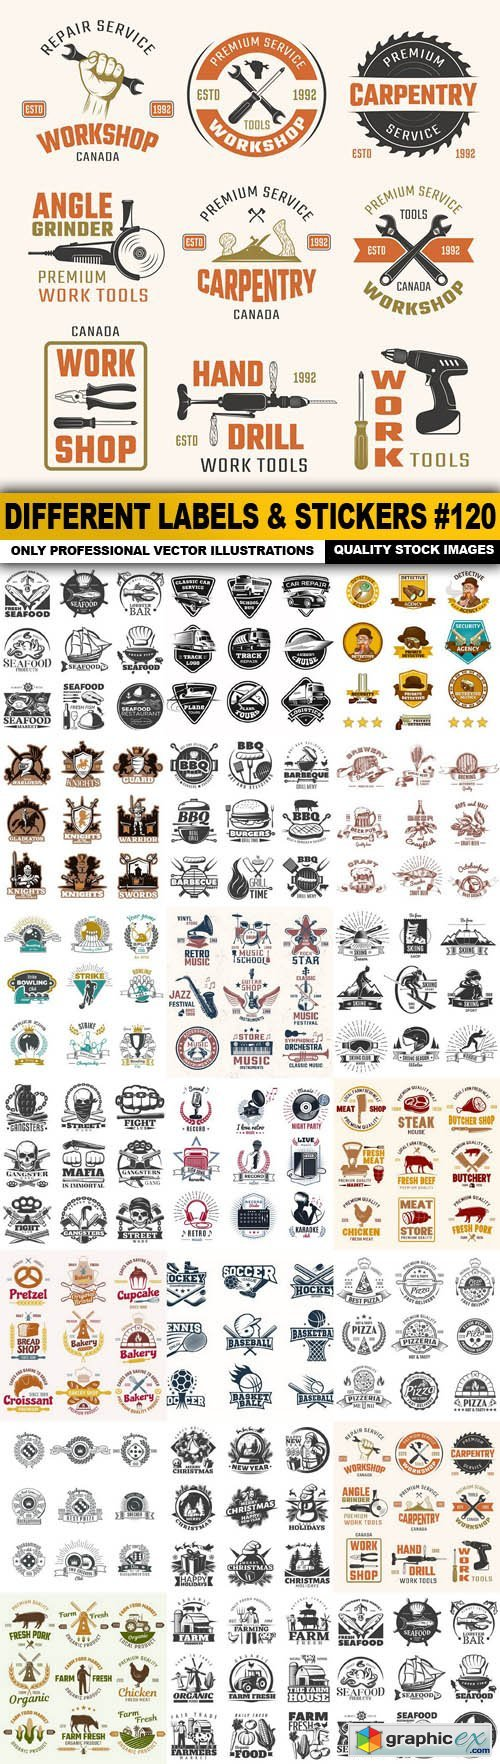 Different Labels & Stickers #120 - 20 Vector